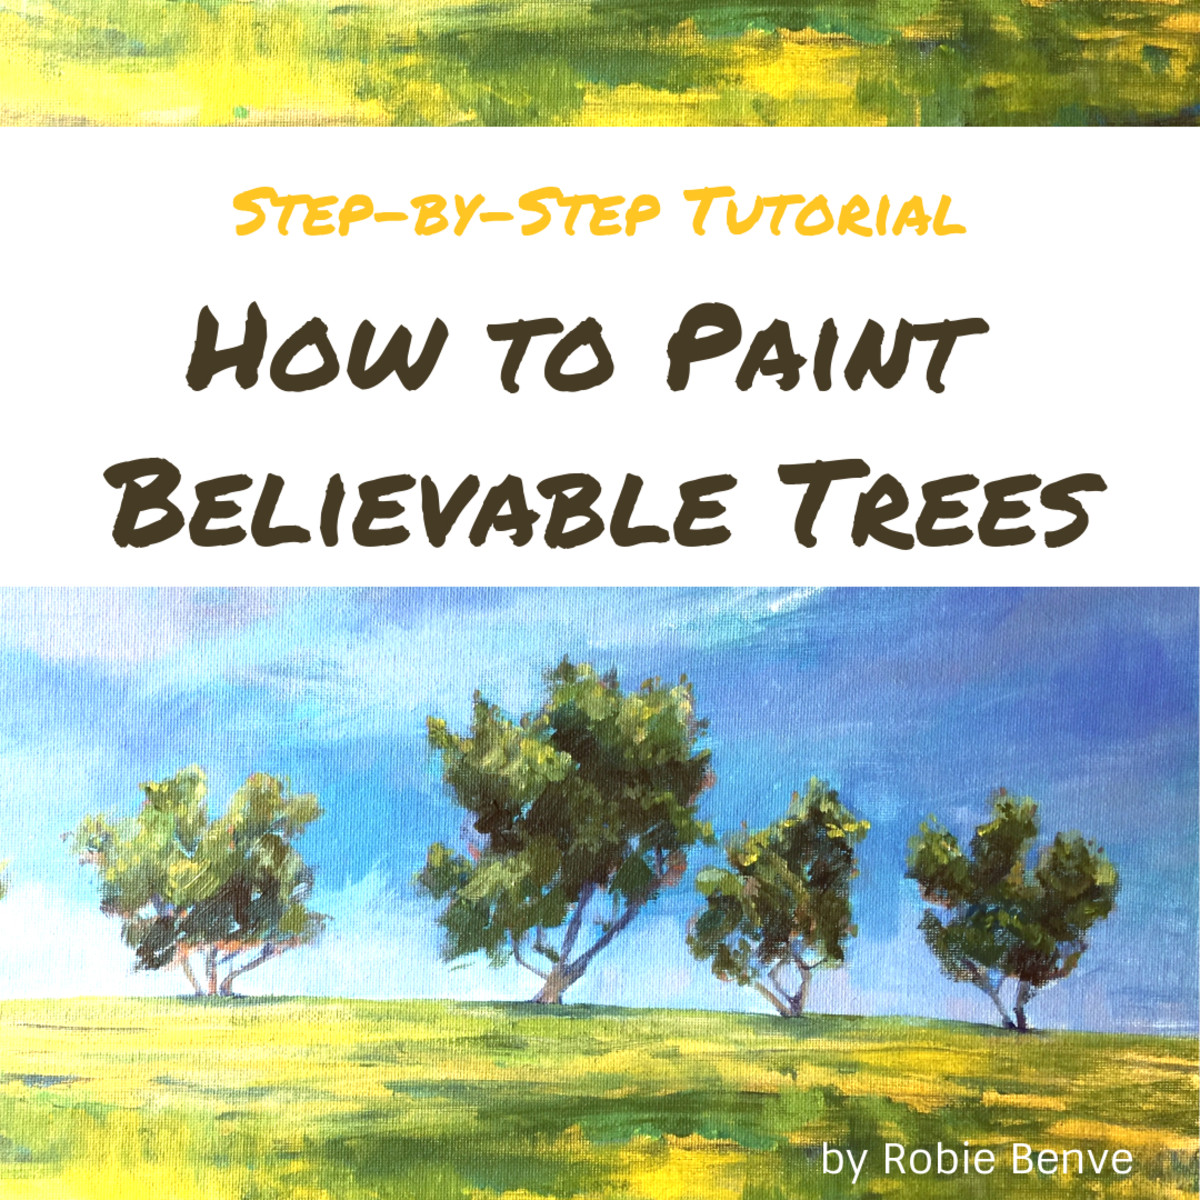 Learn the 10 steps to painting trees, starting with the most important feature of the tree, its contour, and ending with the details. Robie Benve shares her ten secrets to painting trees that are believable and that present character and dimension.